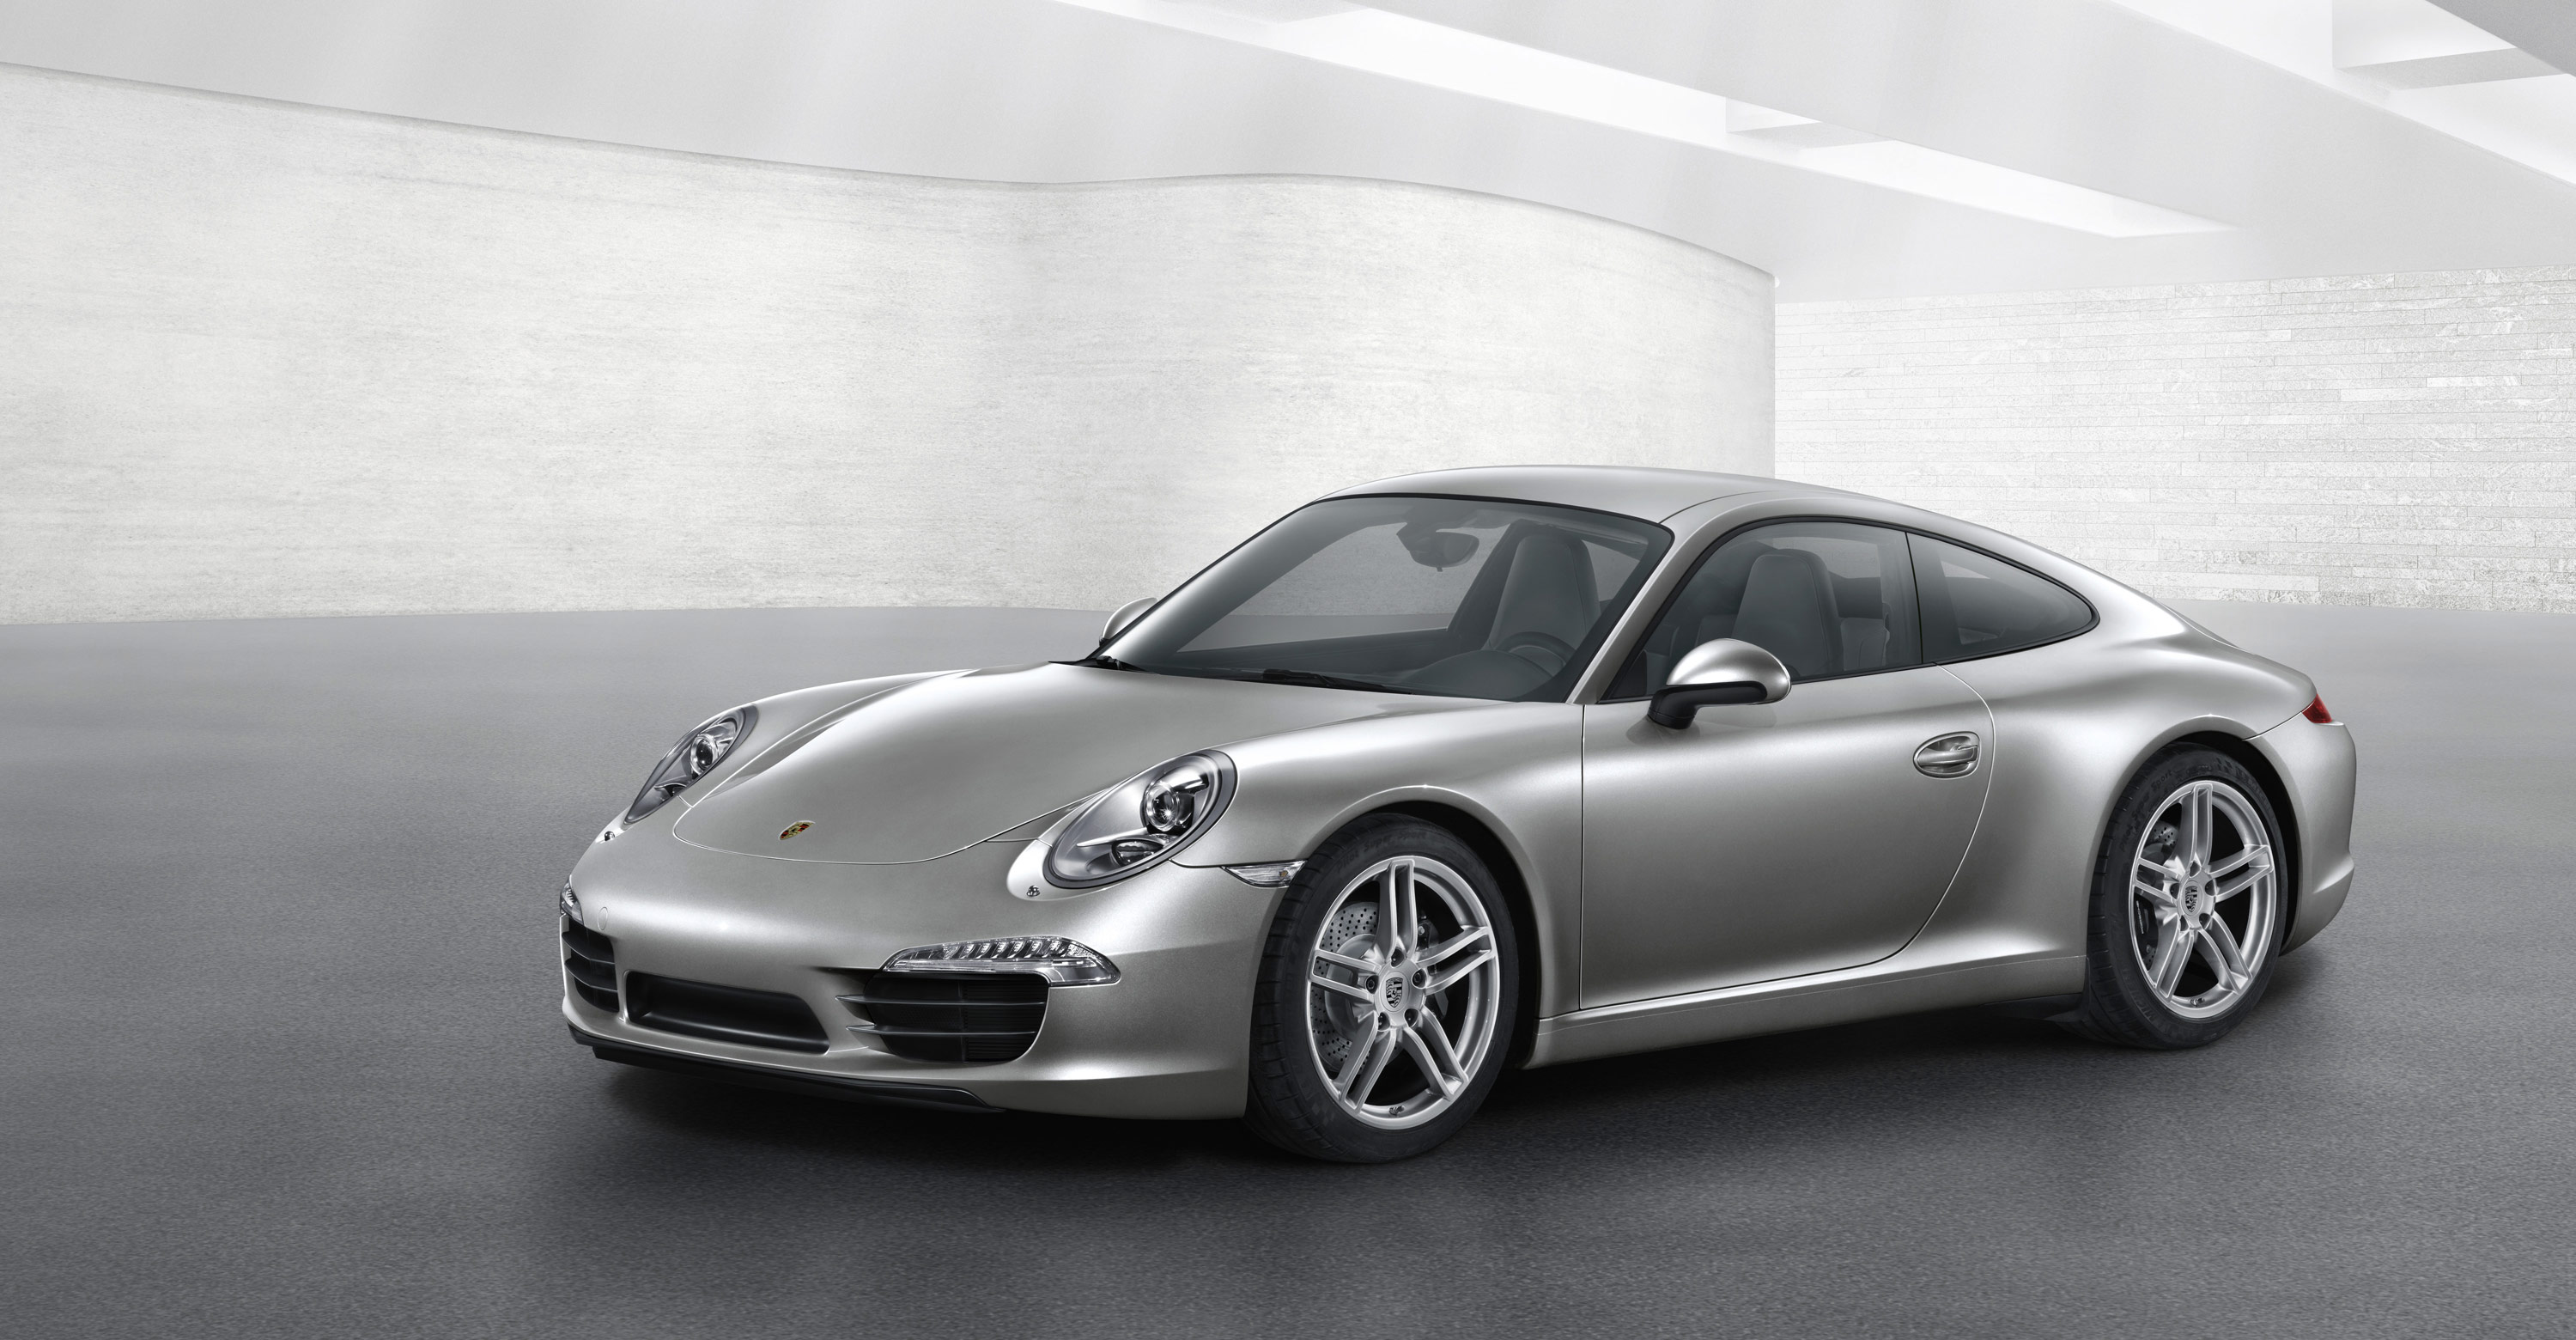 super-sport-car-porsche-911-wallpaper-HD-14-